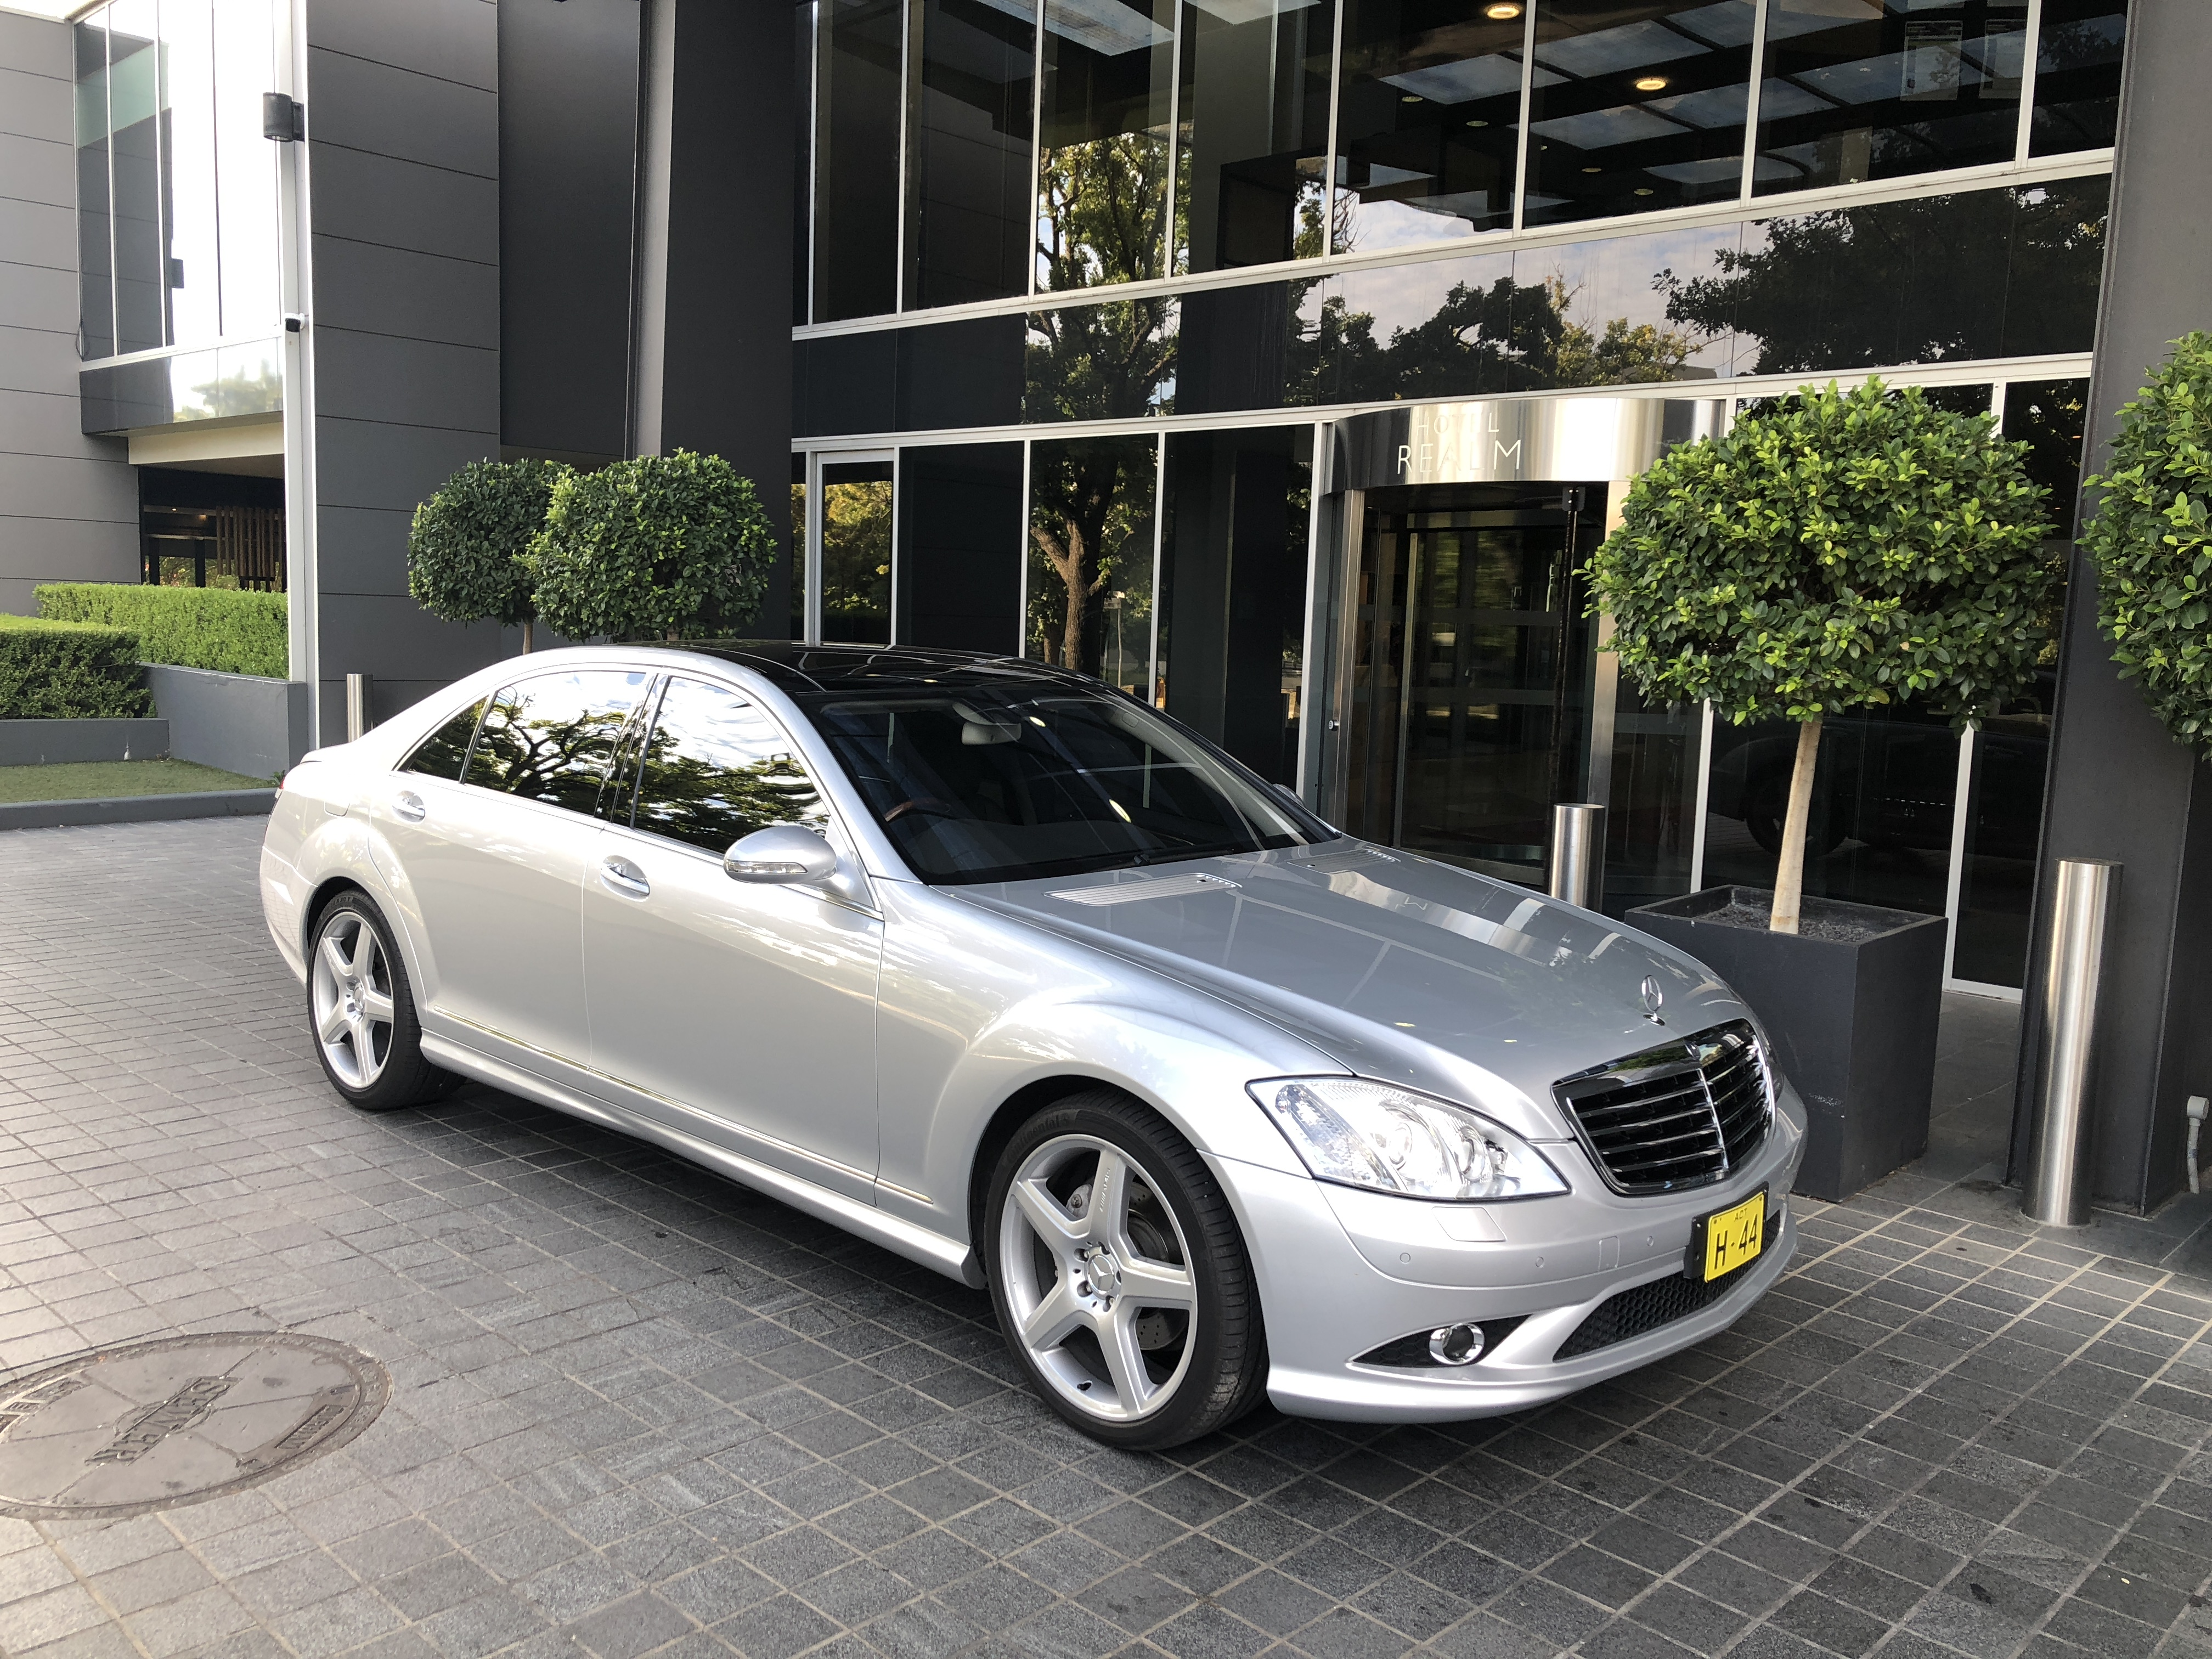 Luxury Family Transfers - Valley Limousines